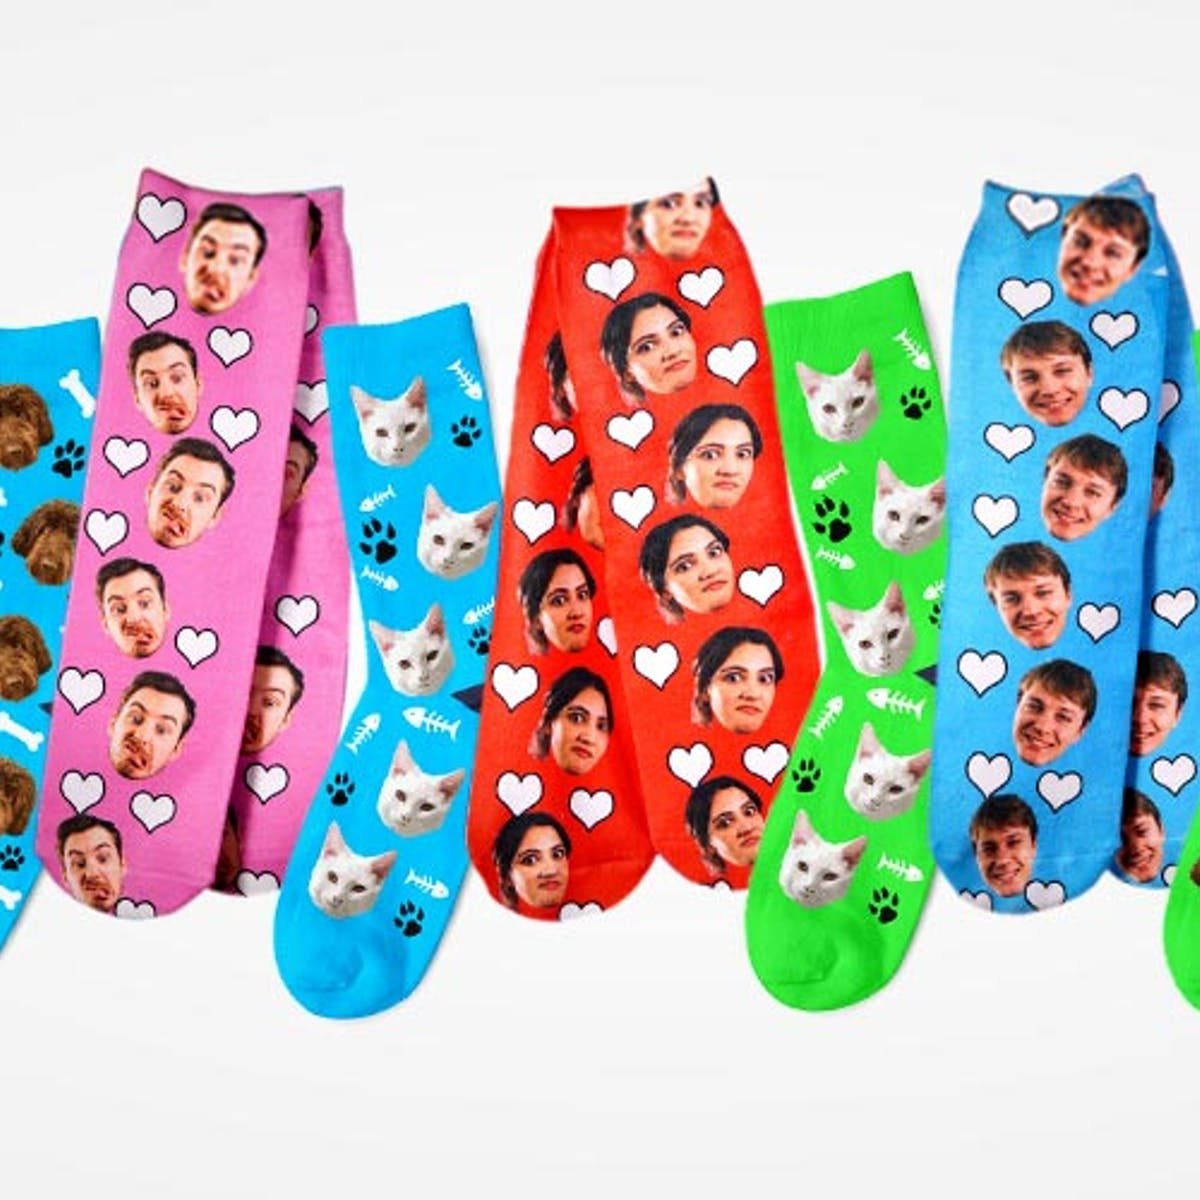 buying now choose original beautiful design Personalized Socks: 25% Off Just Face It Face Socks